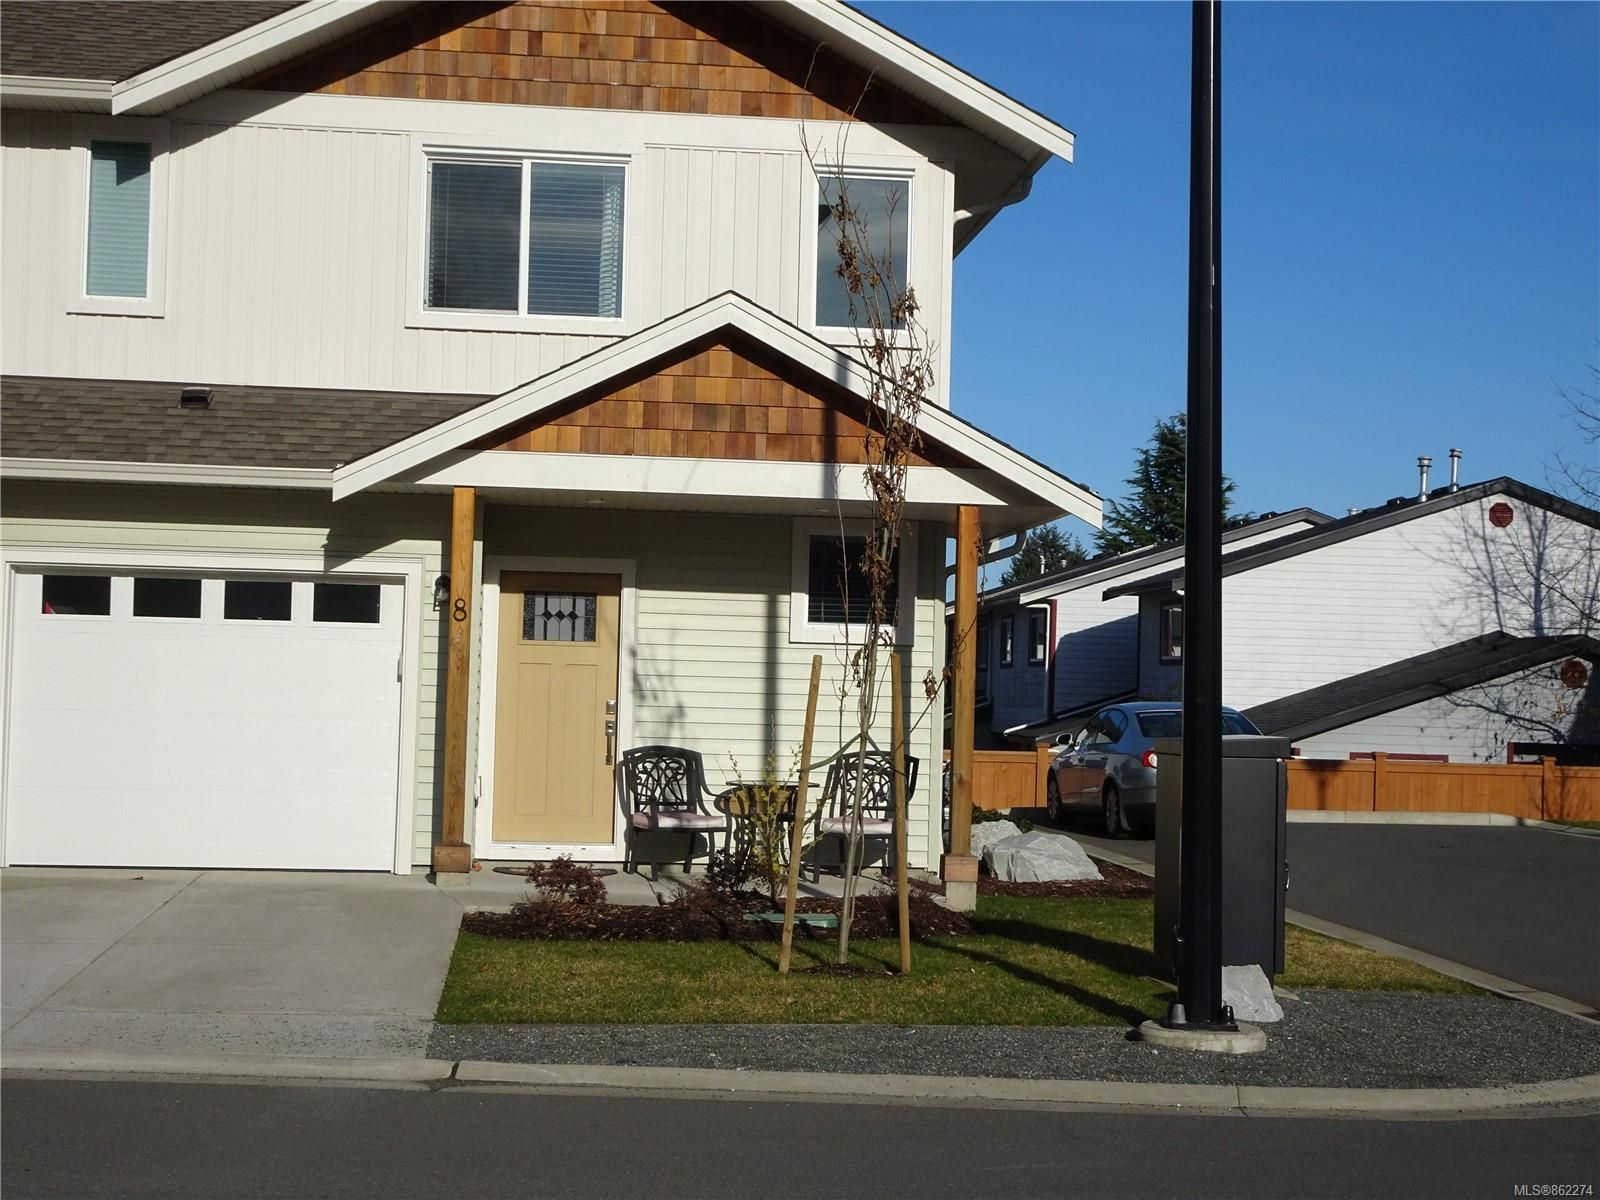 Main Photo: 25 2109 13th St in : CV Courtenay City Row/Townhouse for sale (Comox Valley)  : MLS®# 862274